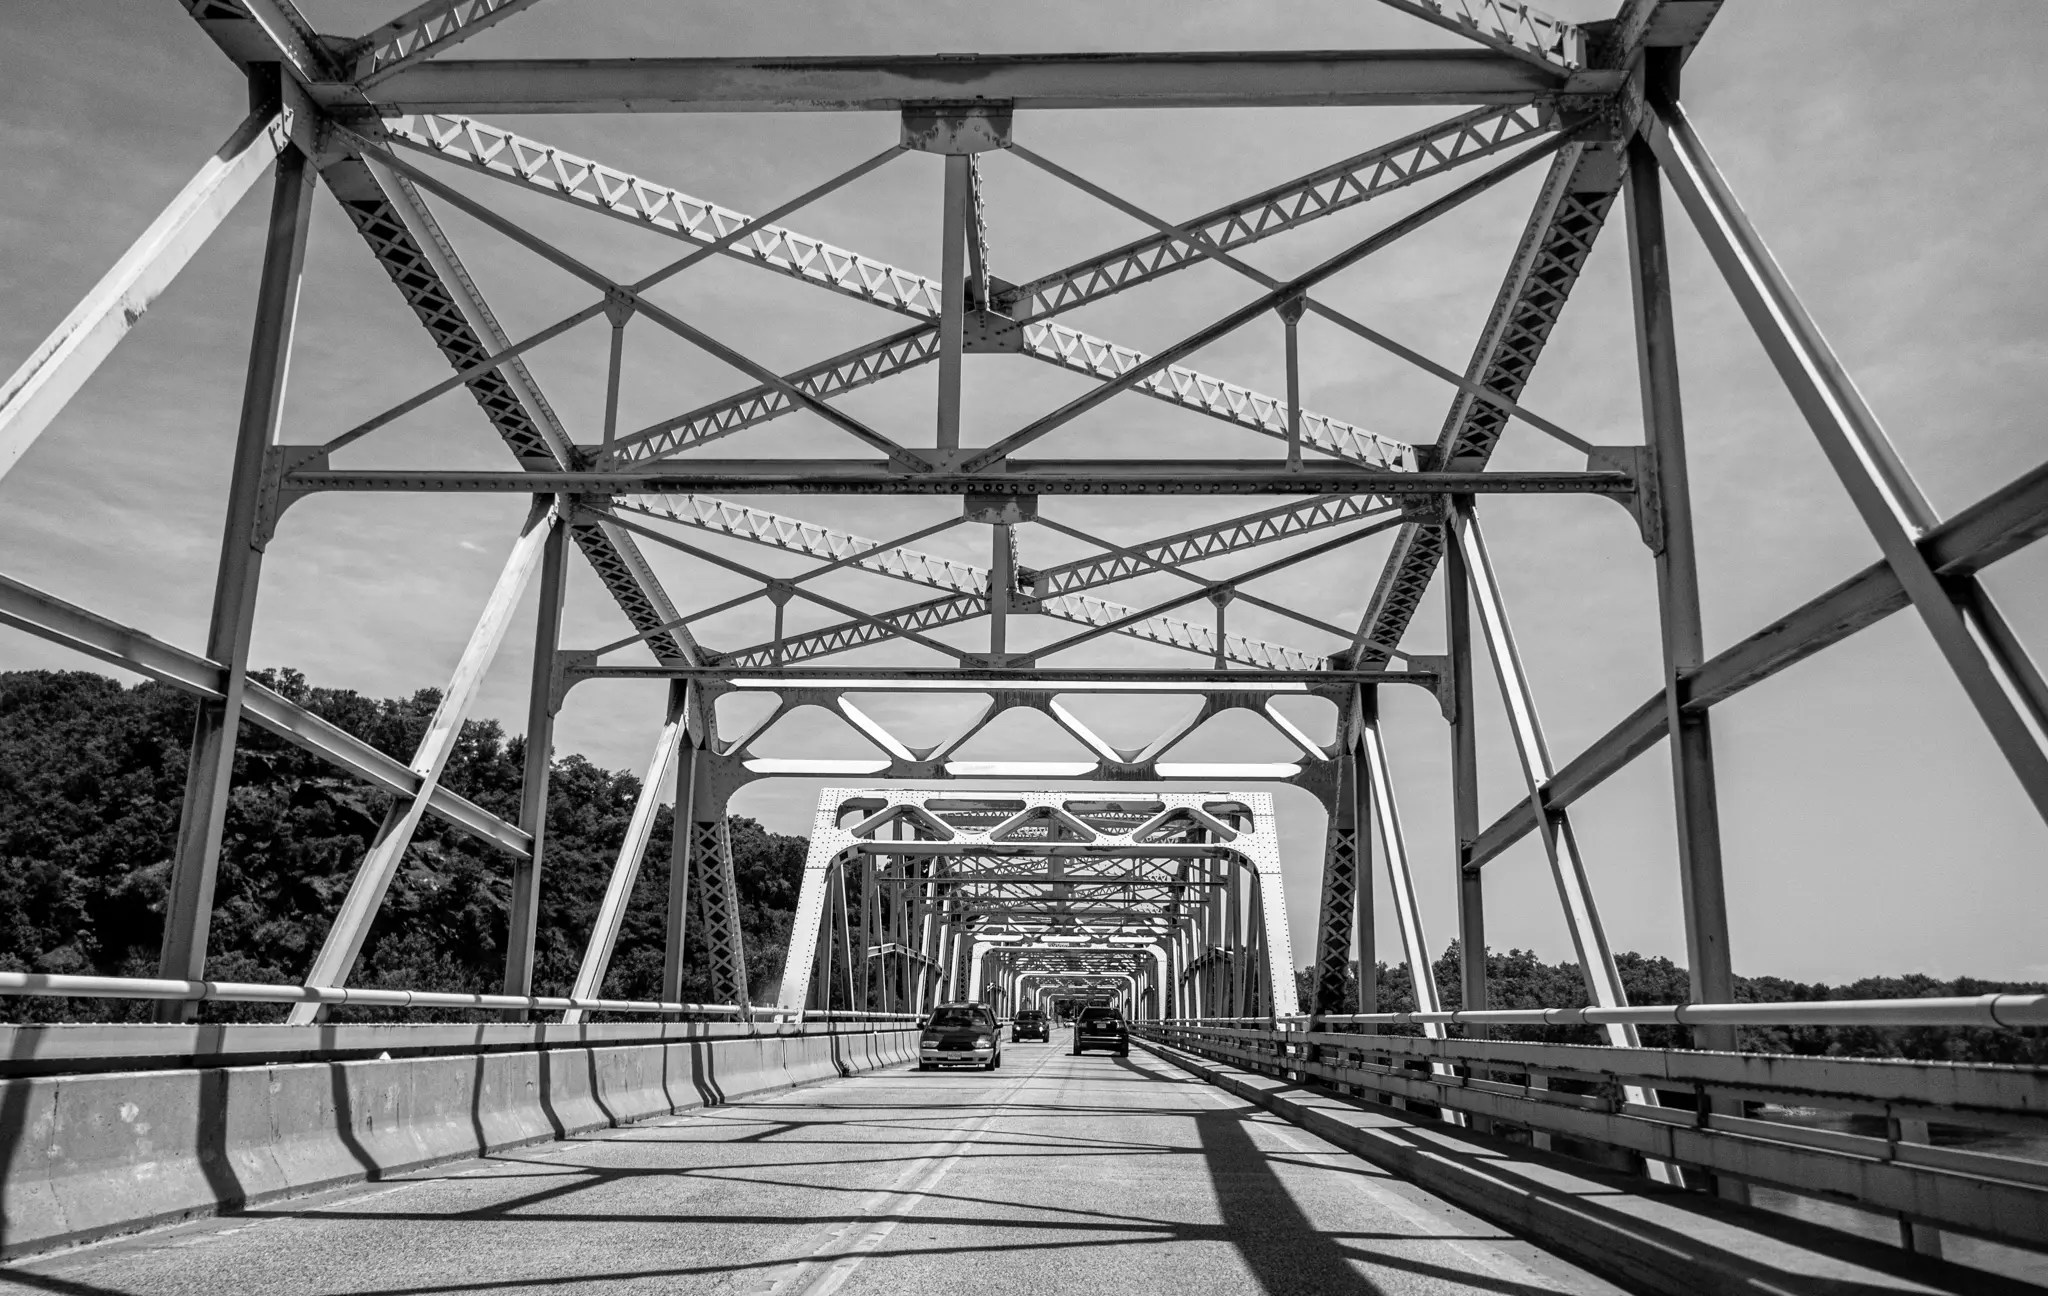 Steel bridge with cars under a clear sky